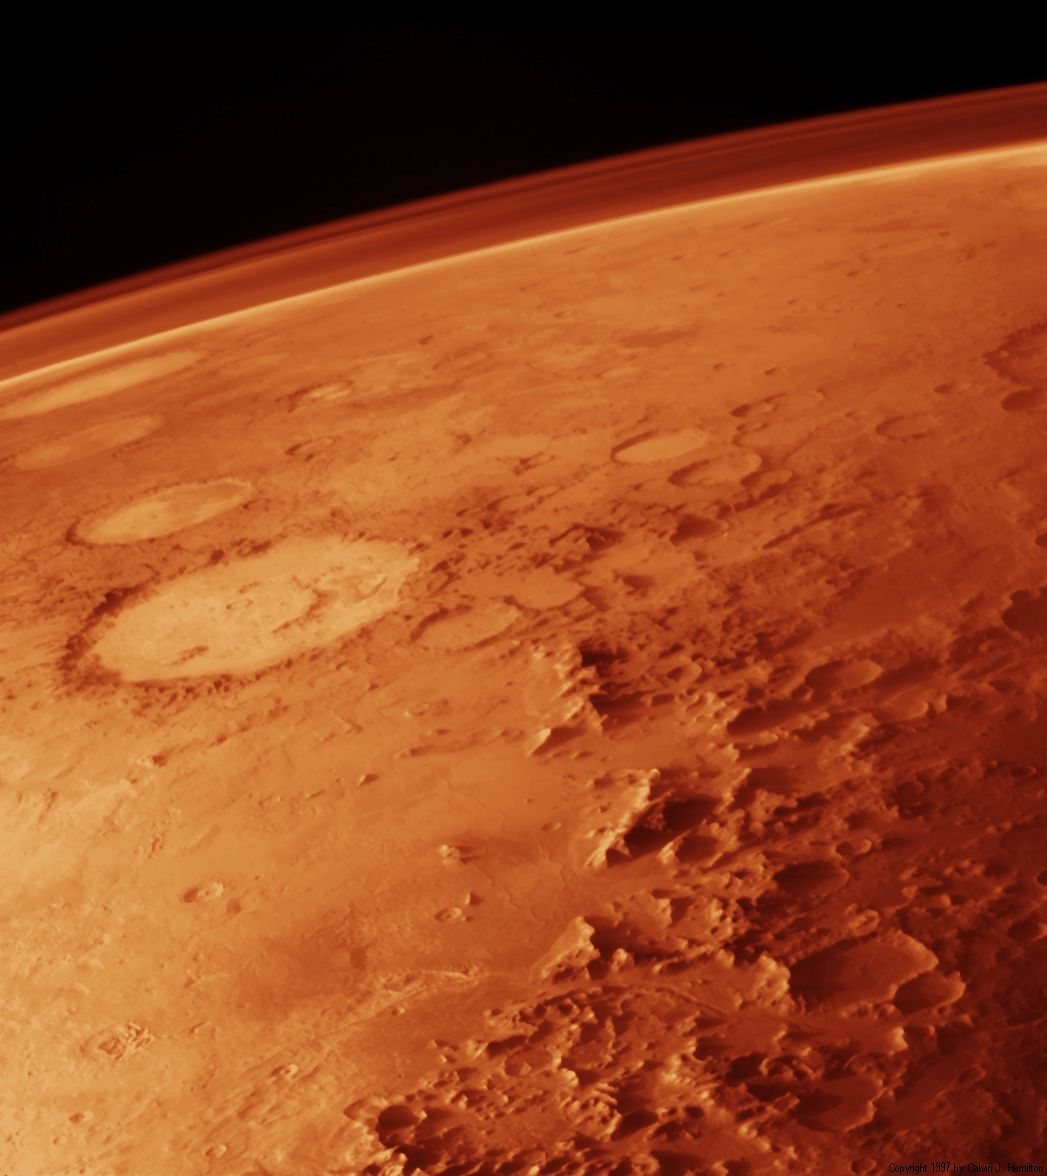 Mars' Thin Atmosphere